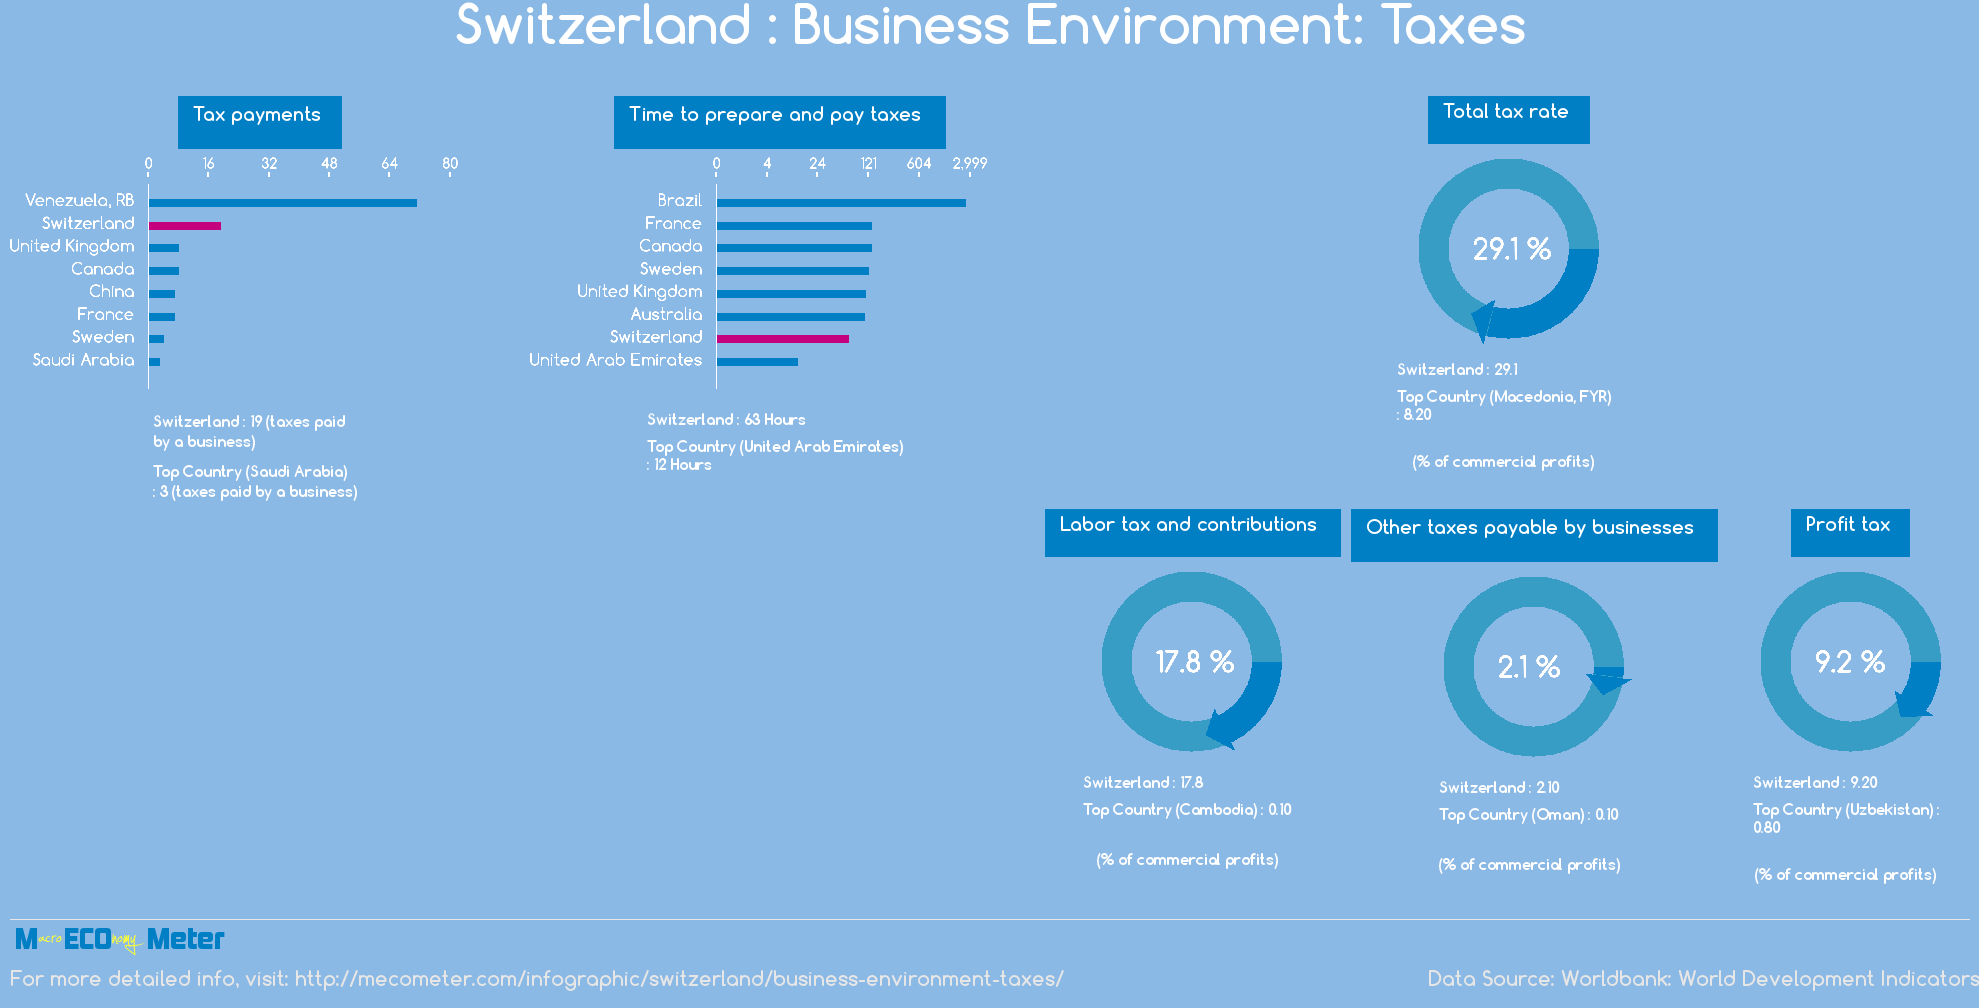 Switzerland : Business Environment: Taxes